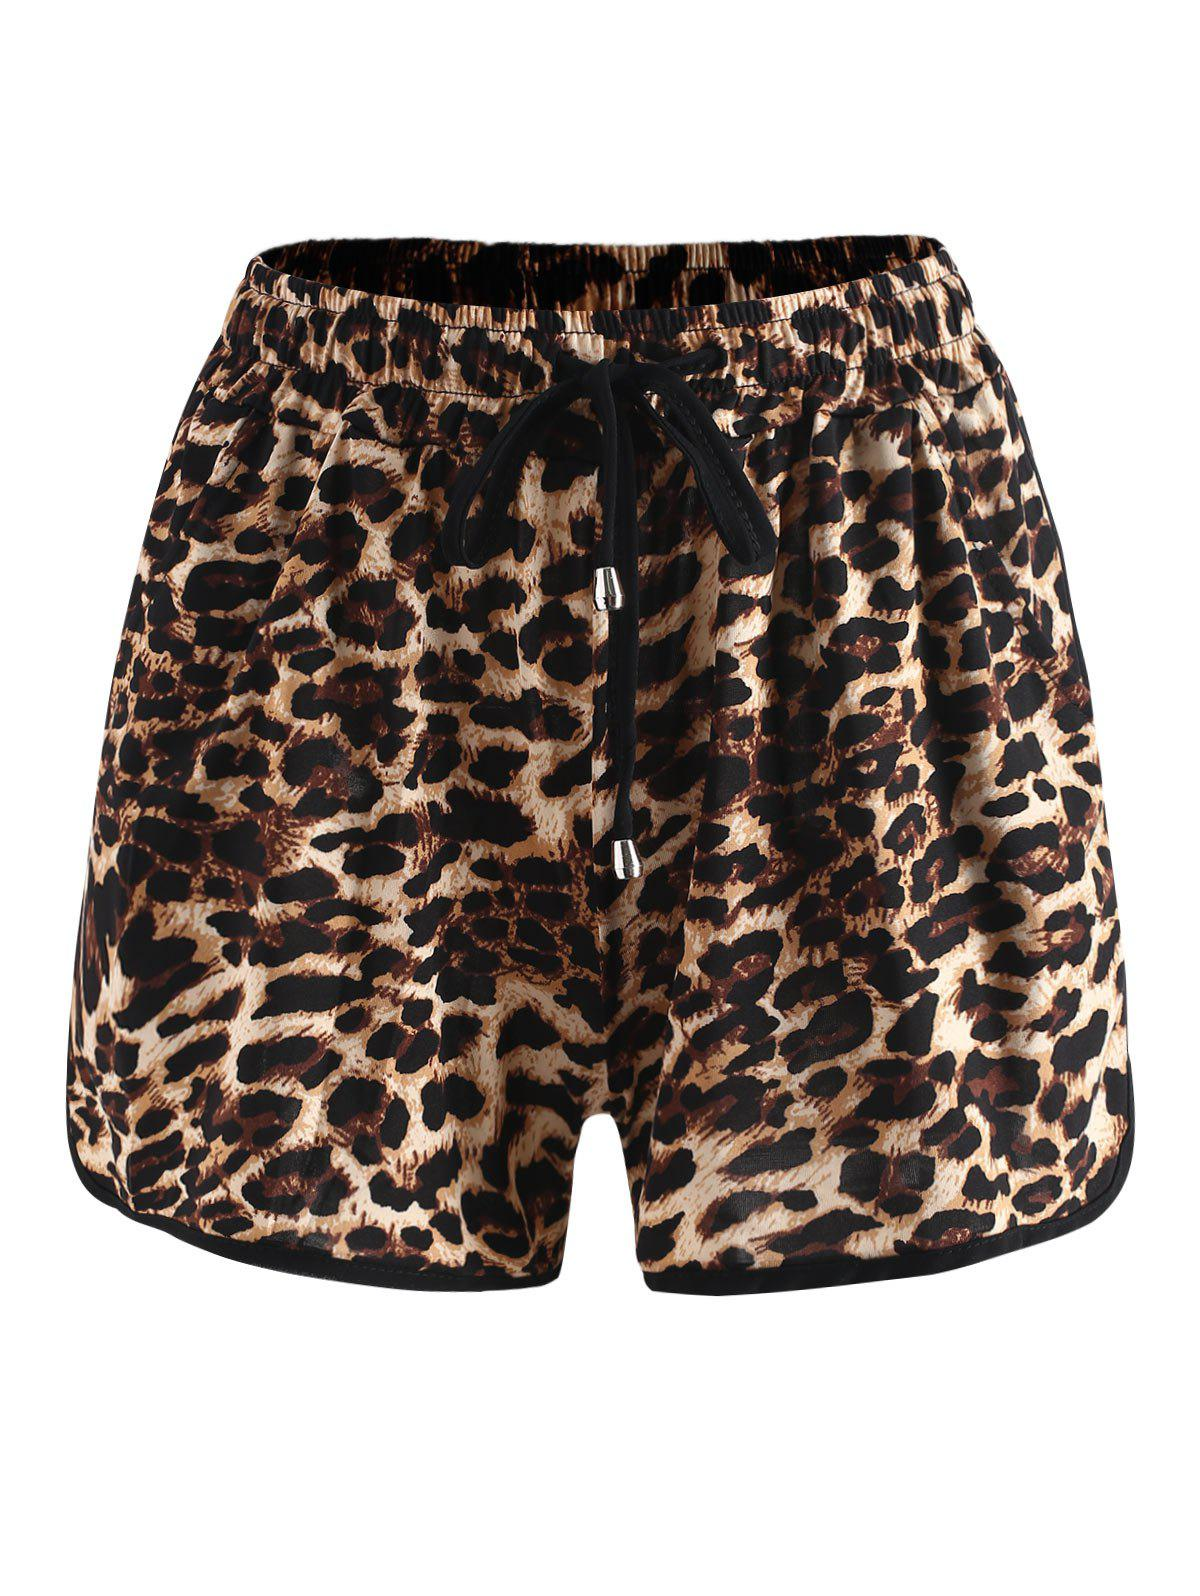 Shop Drawstring Leopard Shorts